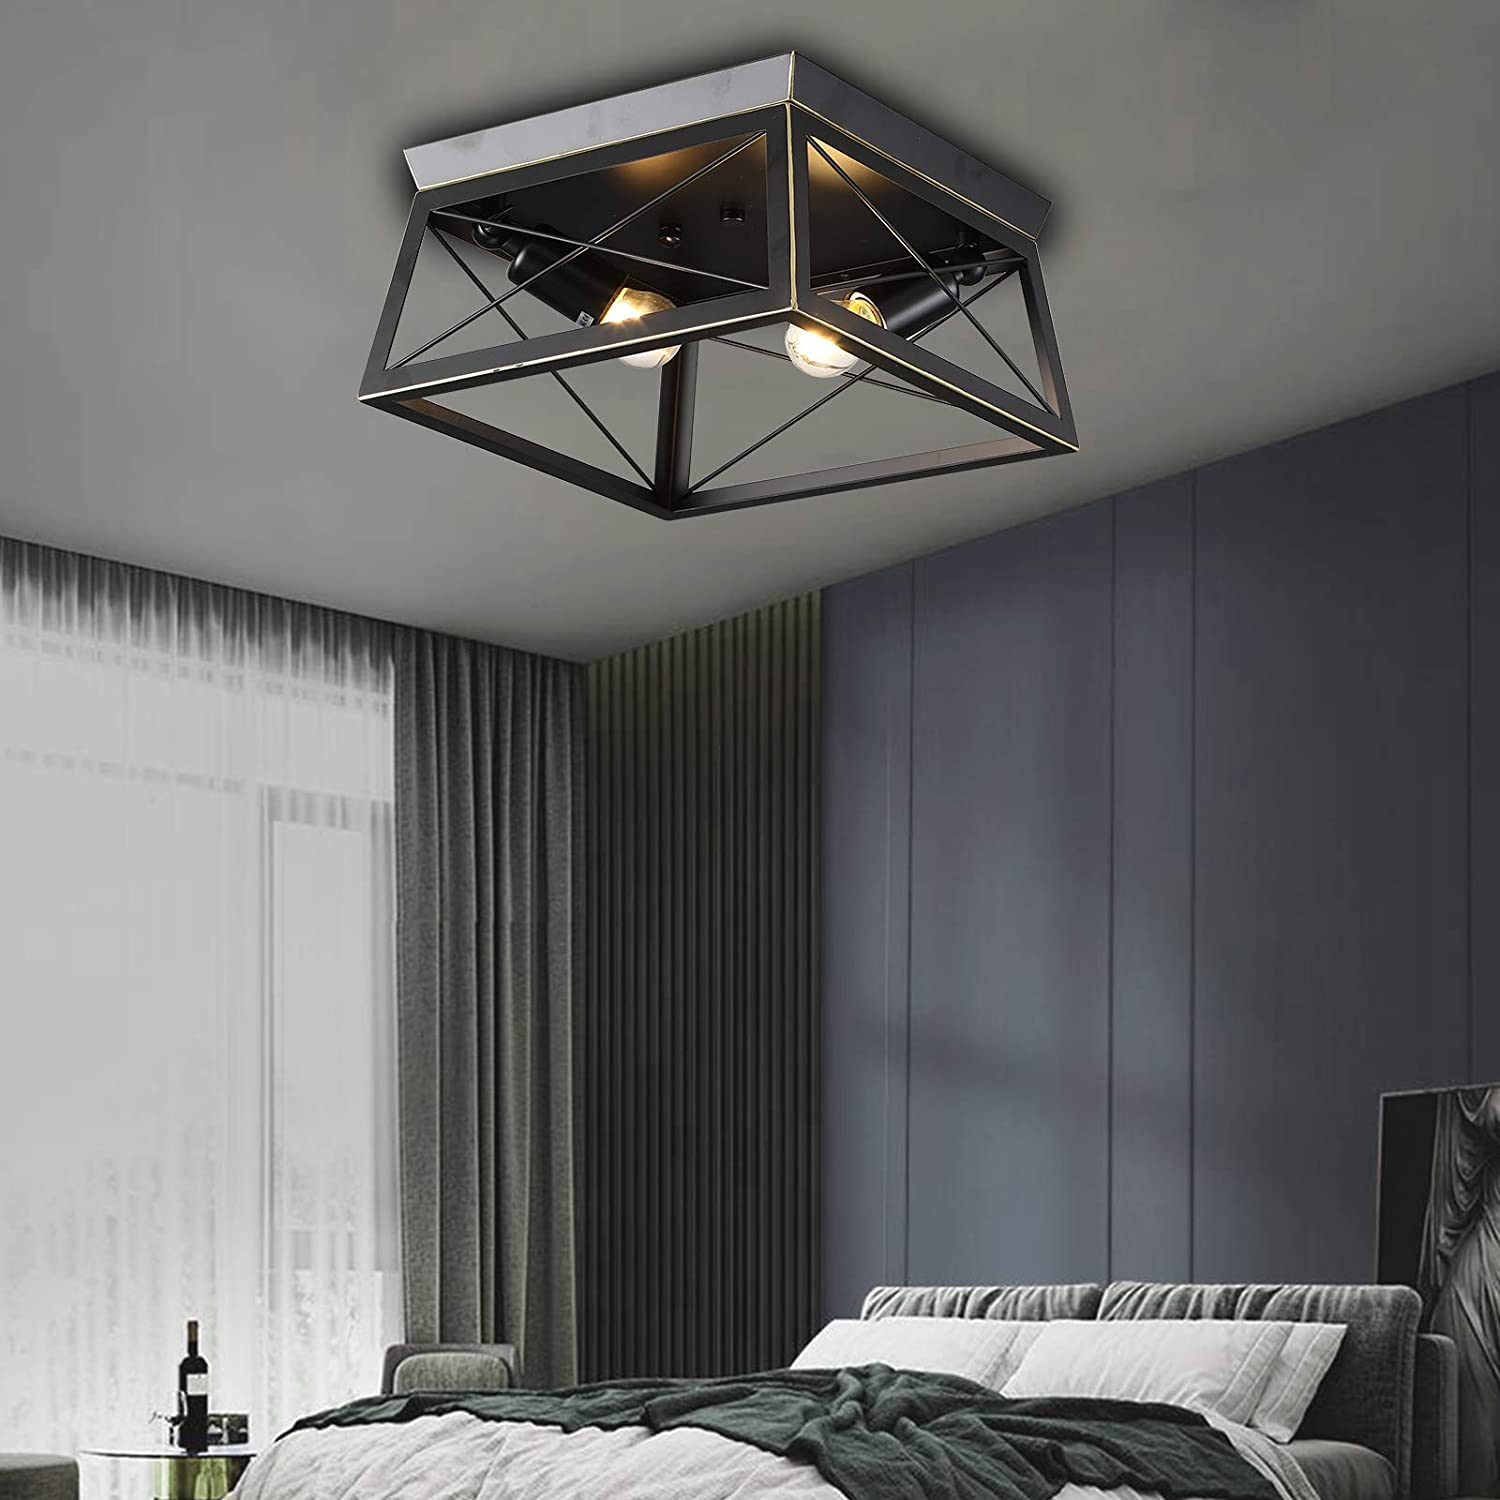 New Free Shipping TFCFL Limited time sale Industrial Ceiling Light Flush Farmhouse M Fixtures